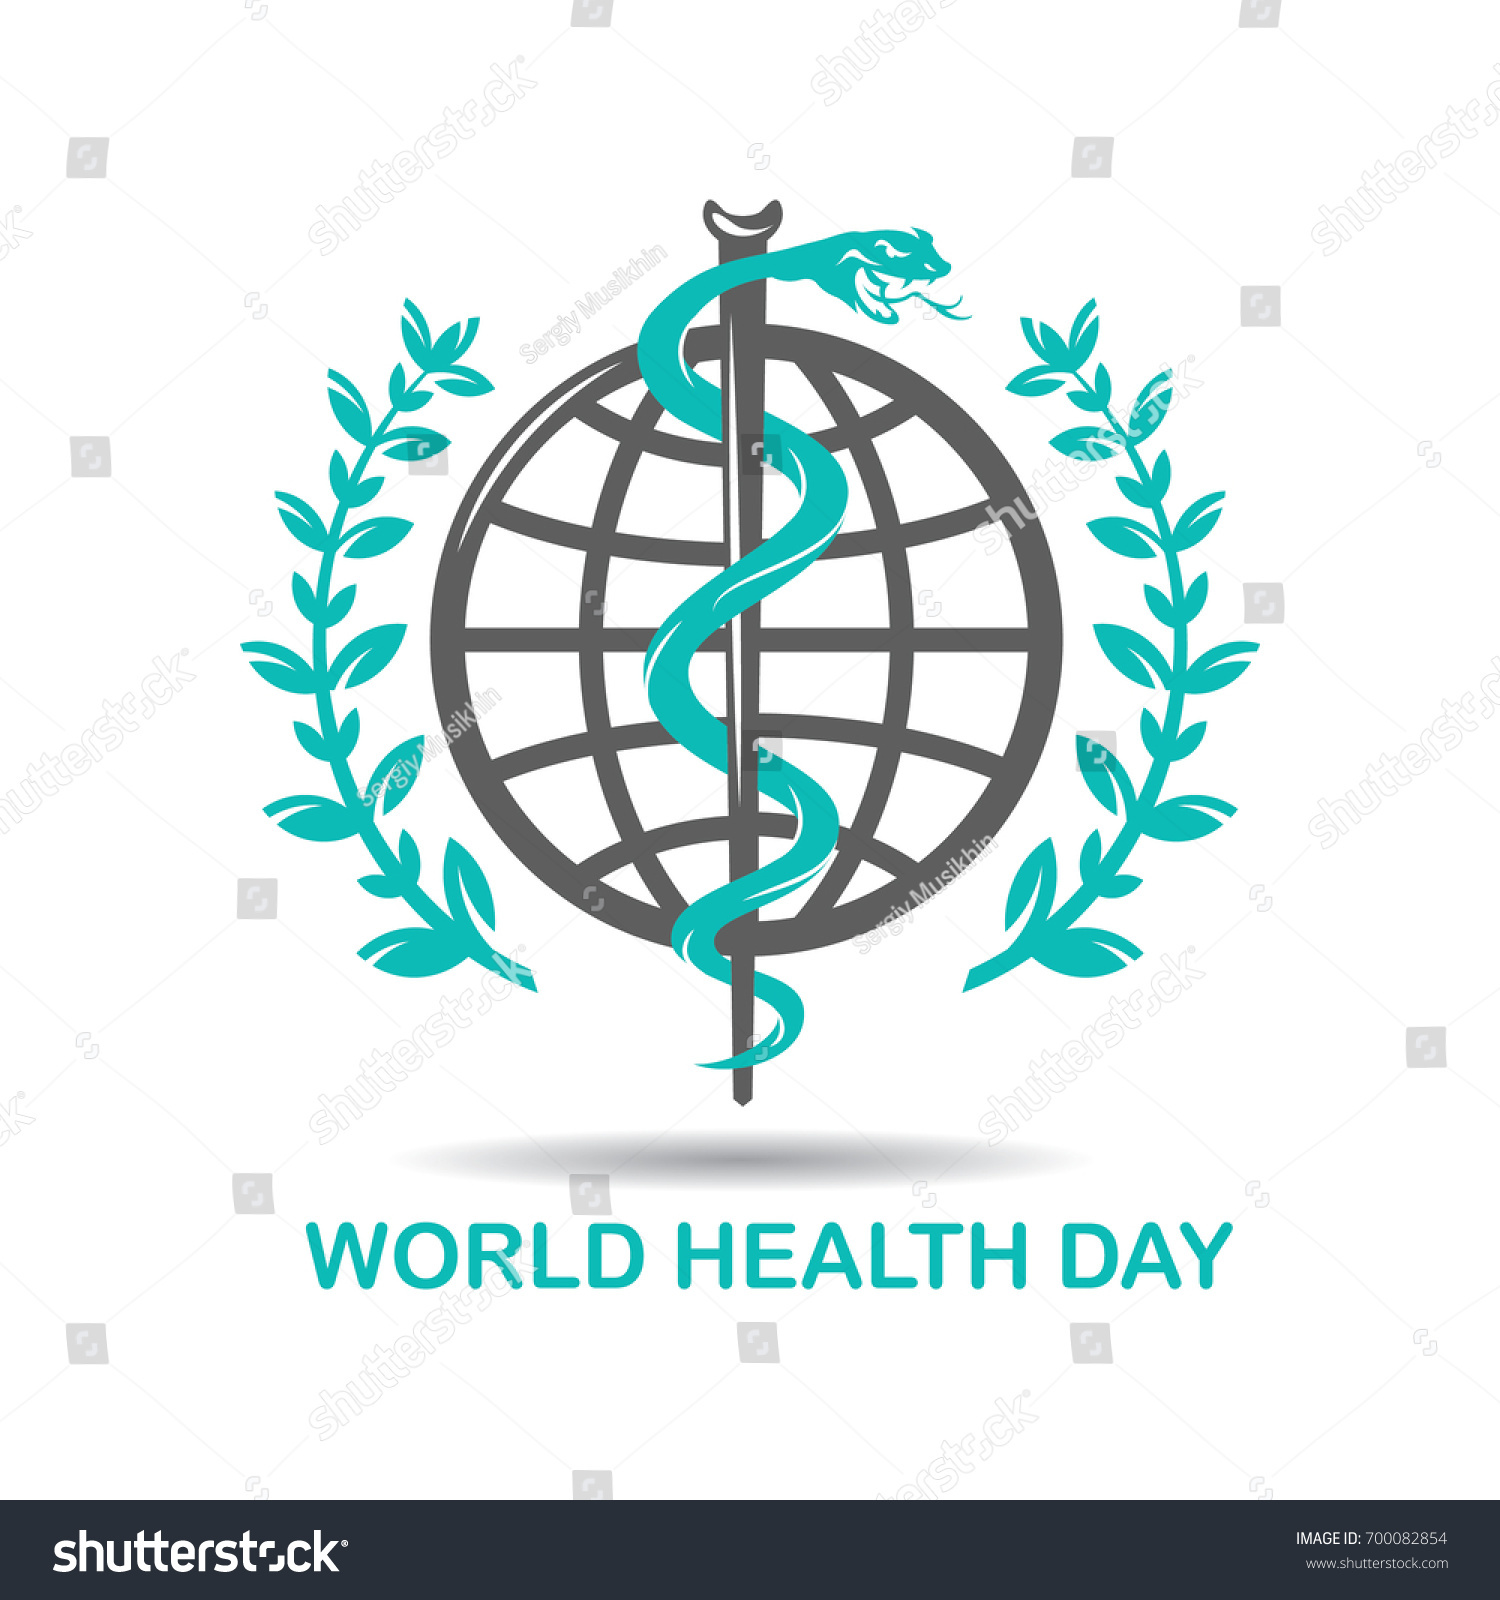 Caduceus symbol snake intertwined around rod stock vector caduceus symbol snake intertwined around a rod gainst the background of the earth healing biocorpaavc